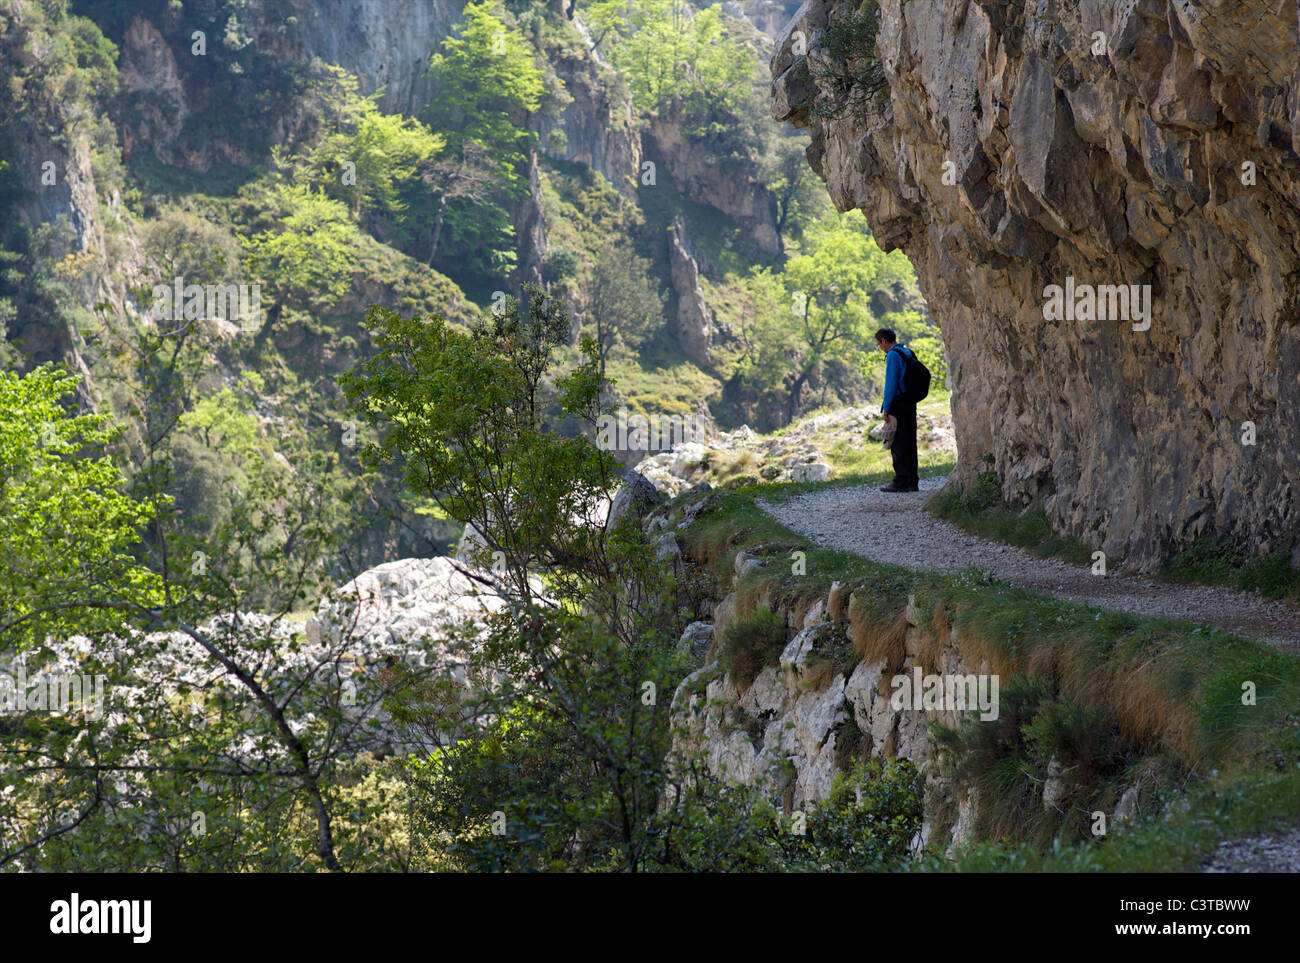 A walker pauses on the Cares Gorge footpath, Picos de Europa, Spain - Stock Image